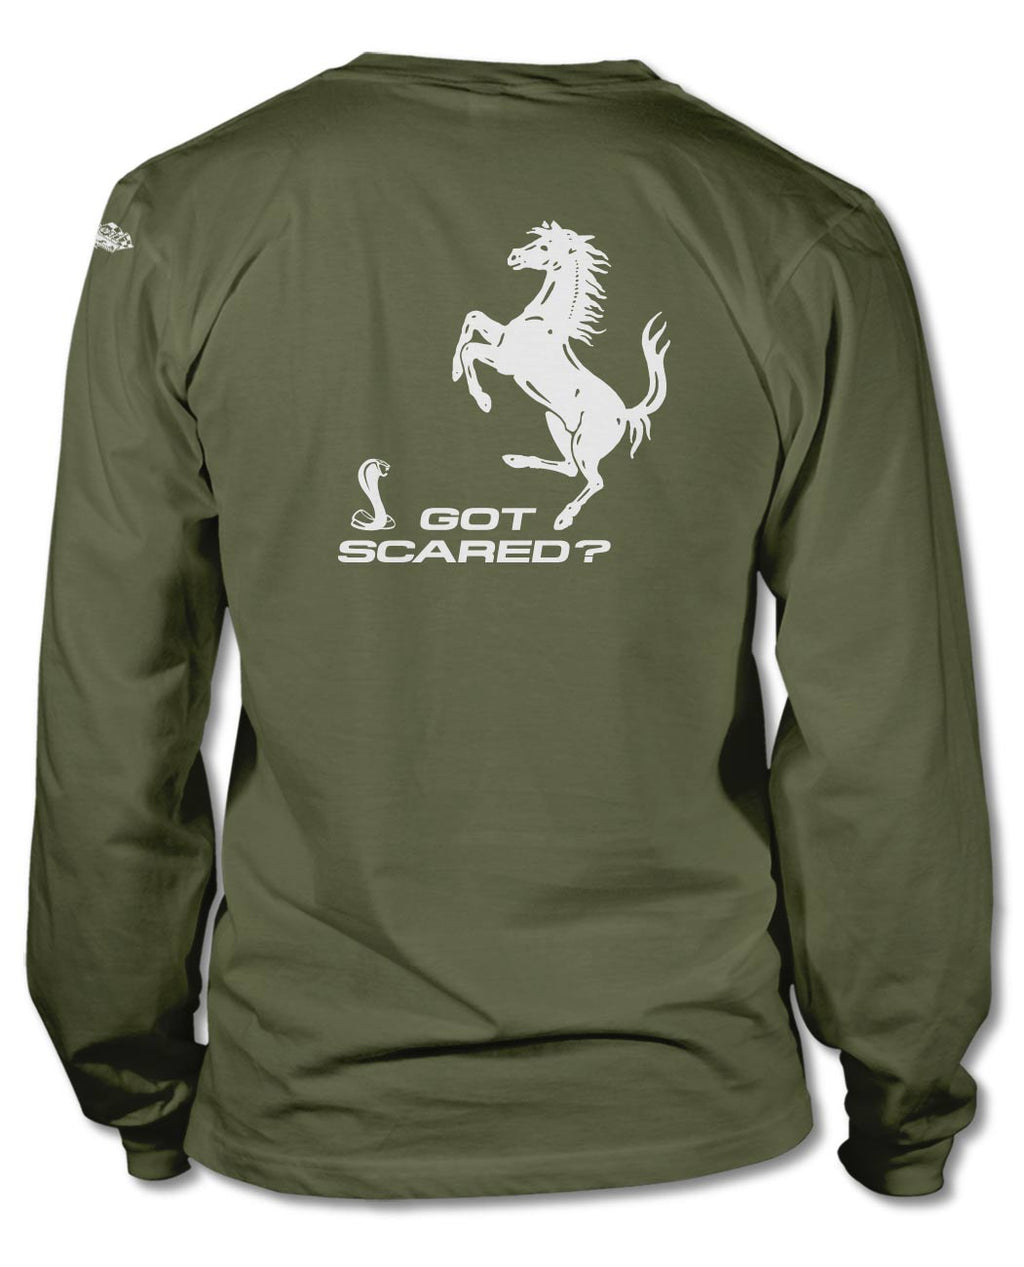 "1965 AC Shelby Cobra ""F******-Cobra Wars"" Got Scared? T-Shirt  - Long Sleeves"